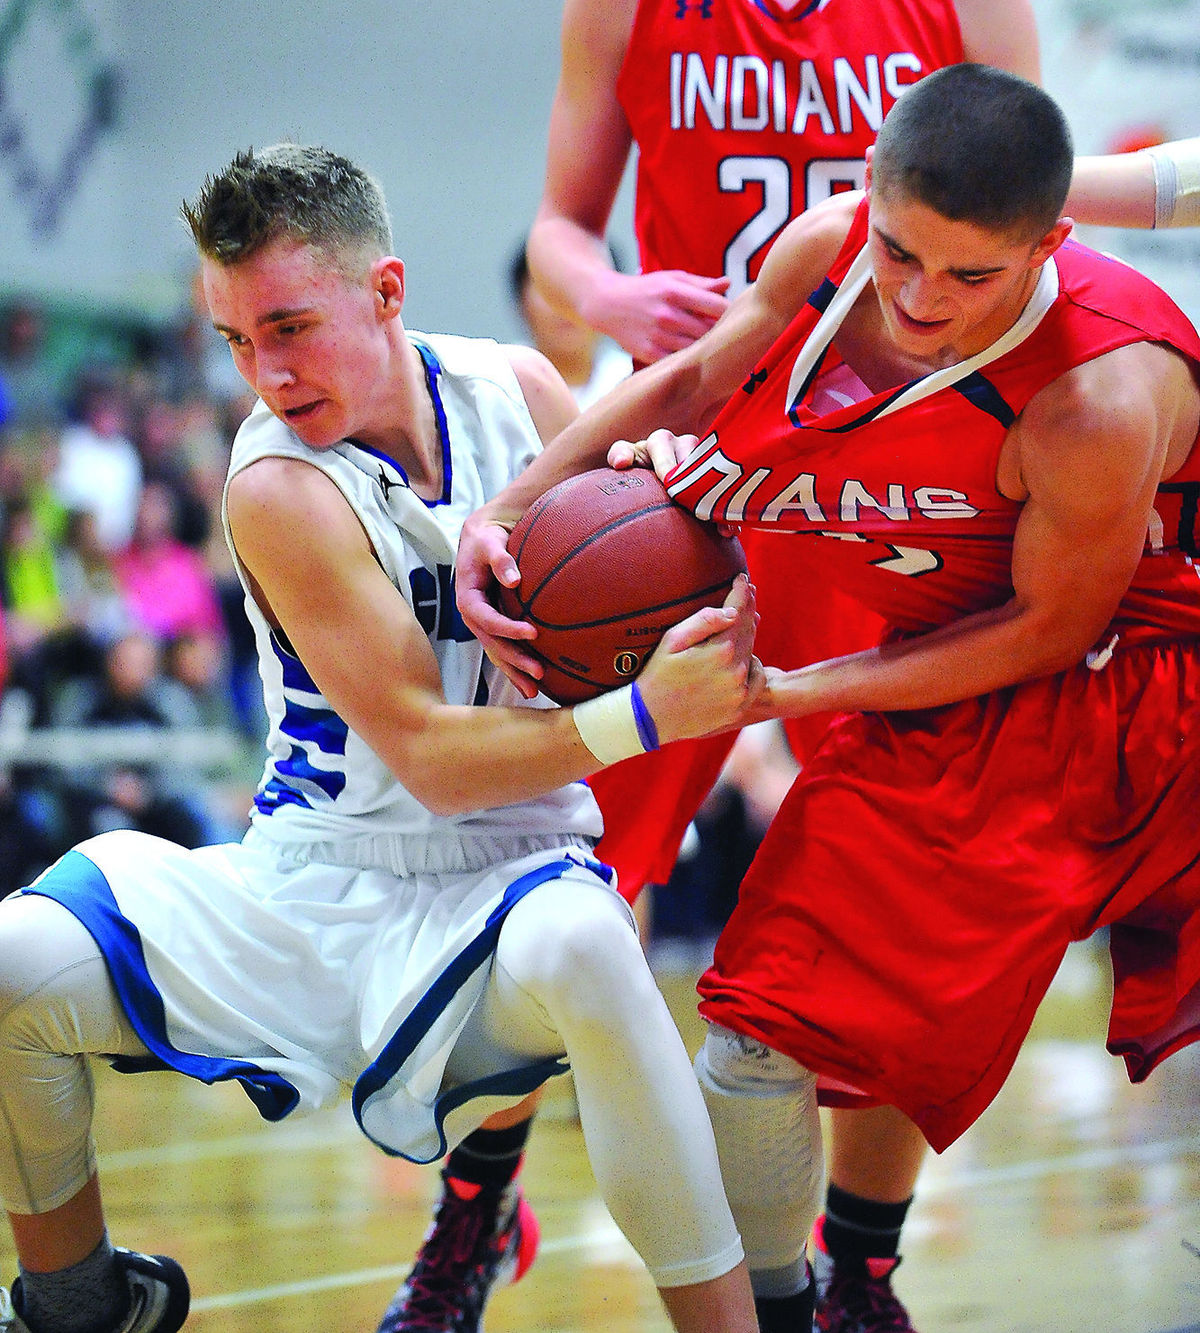 optometrist Pocatello, Idaho Falls sponsor Centennial High School Basketball